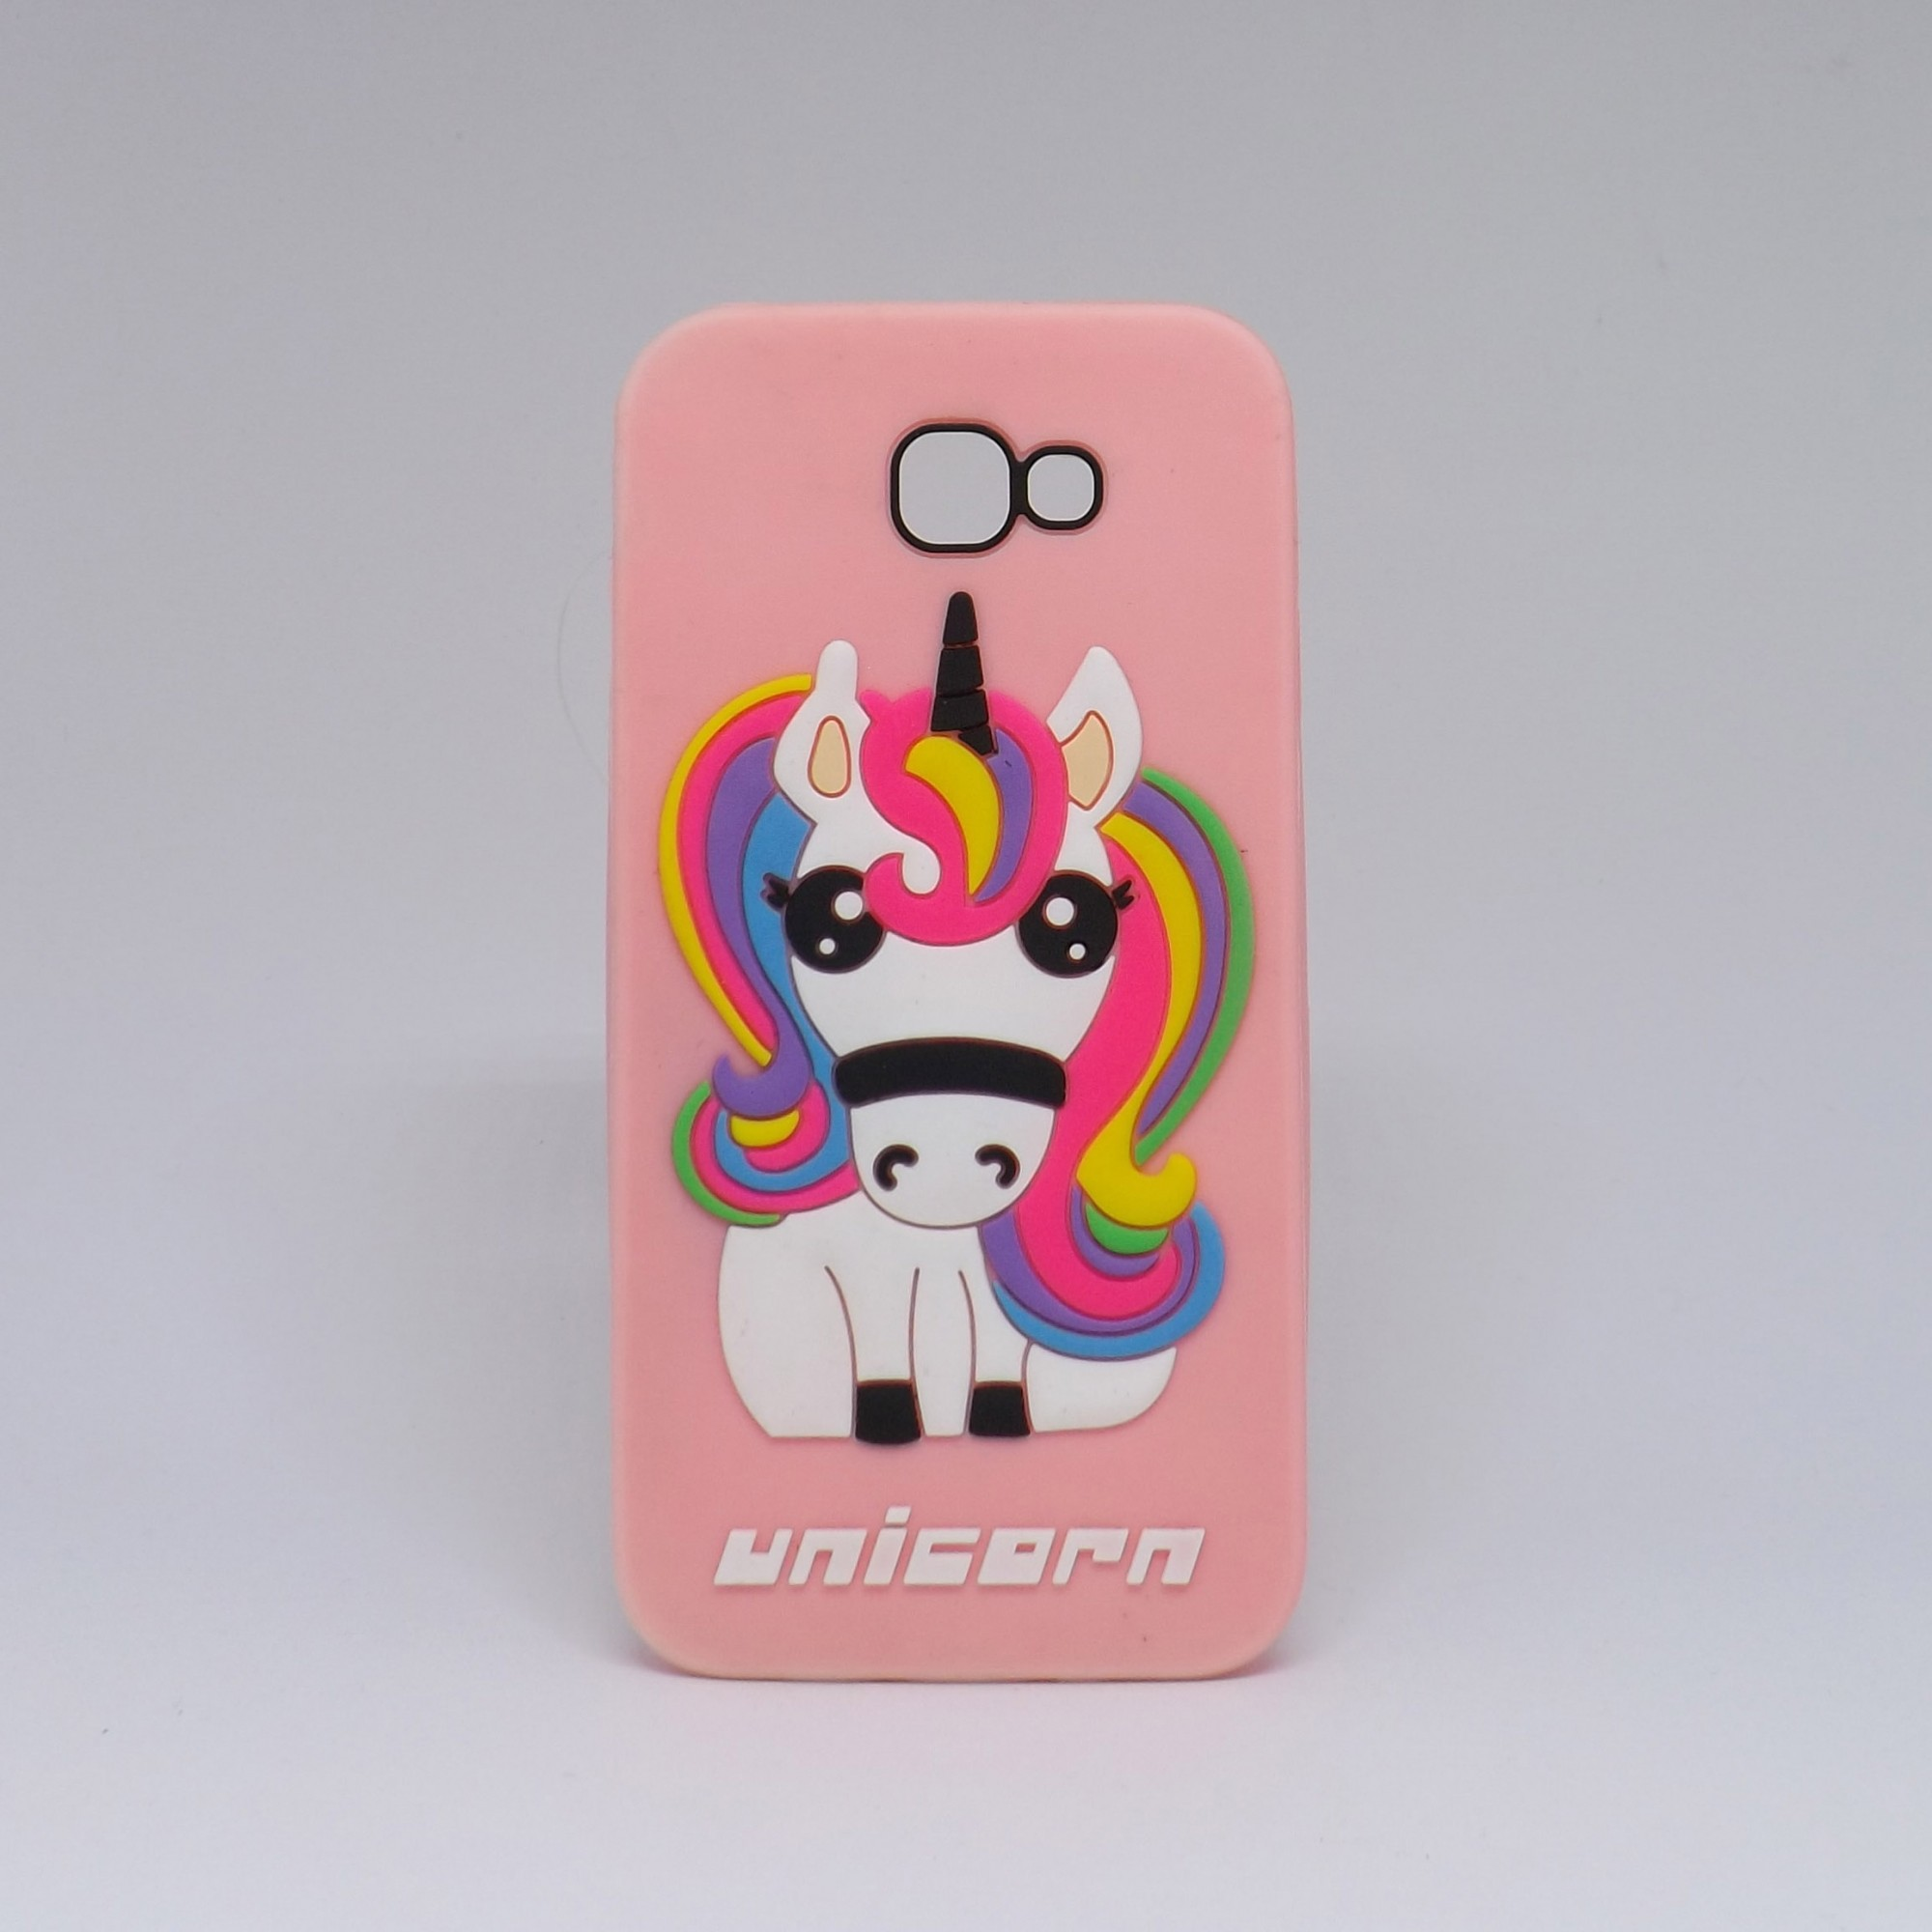 Capa Samsung Galaxy J5 Prime Personagens - Unicórnio